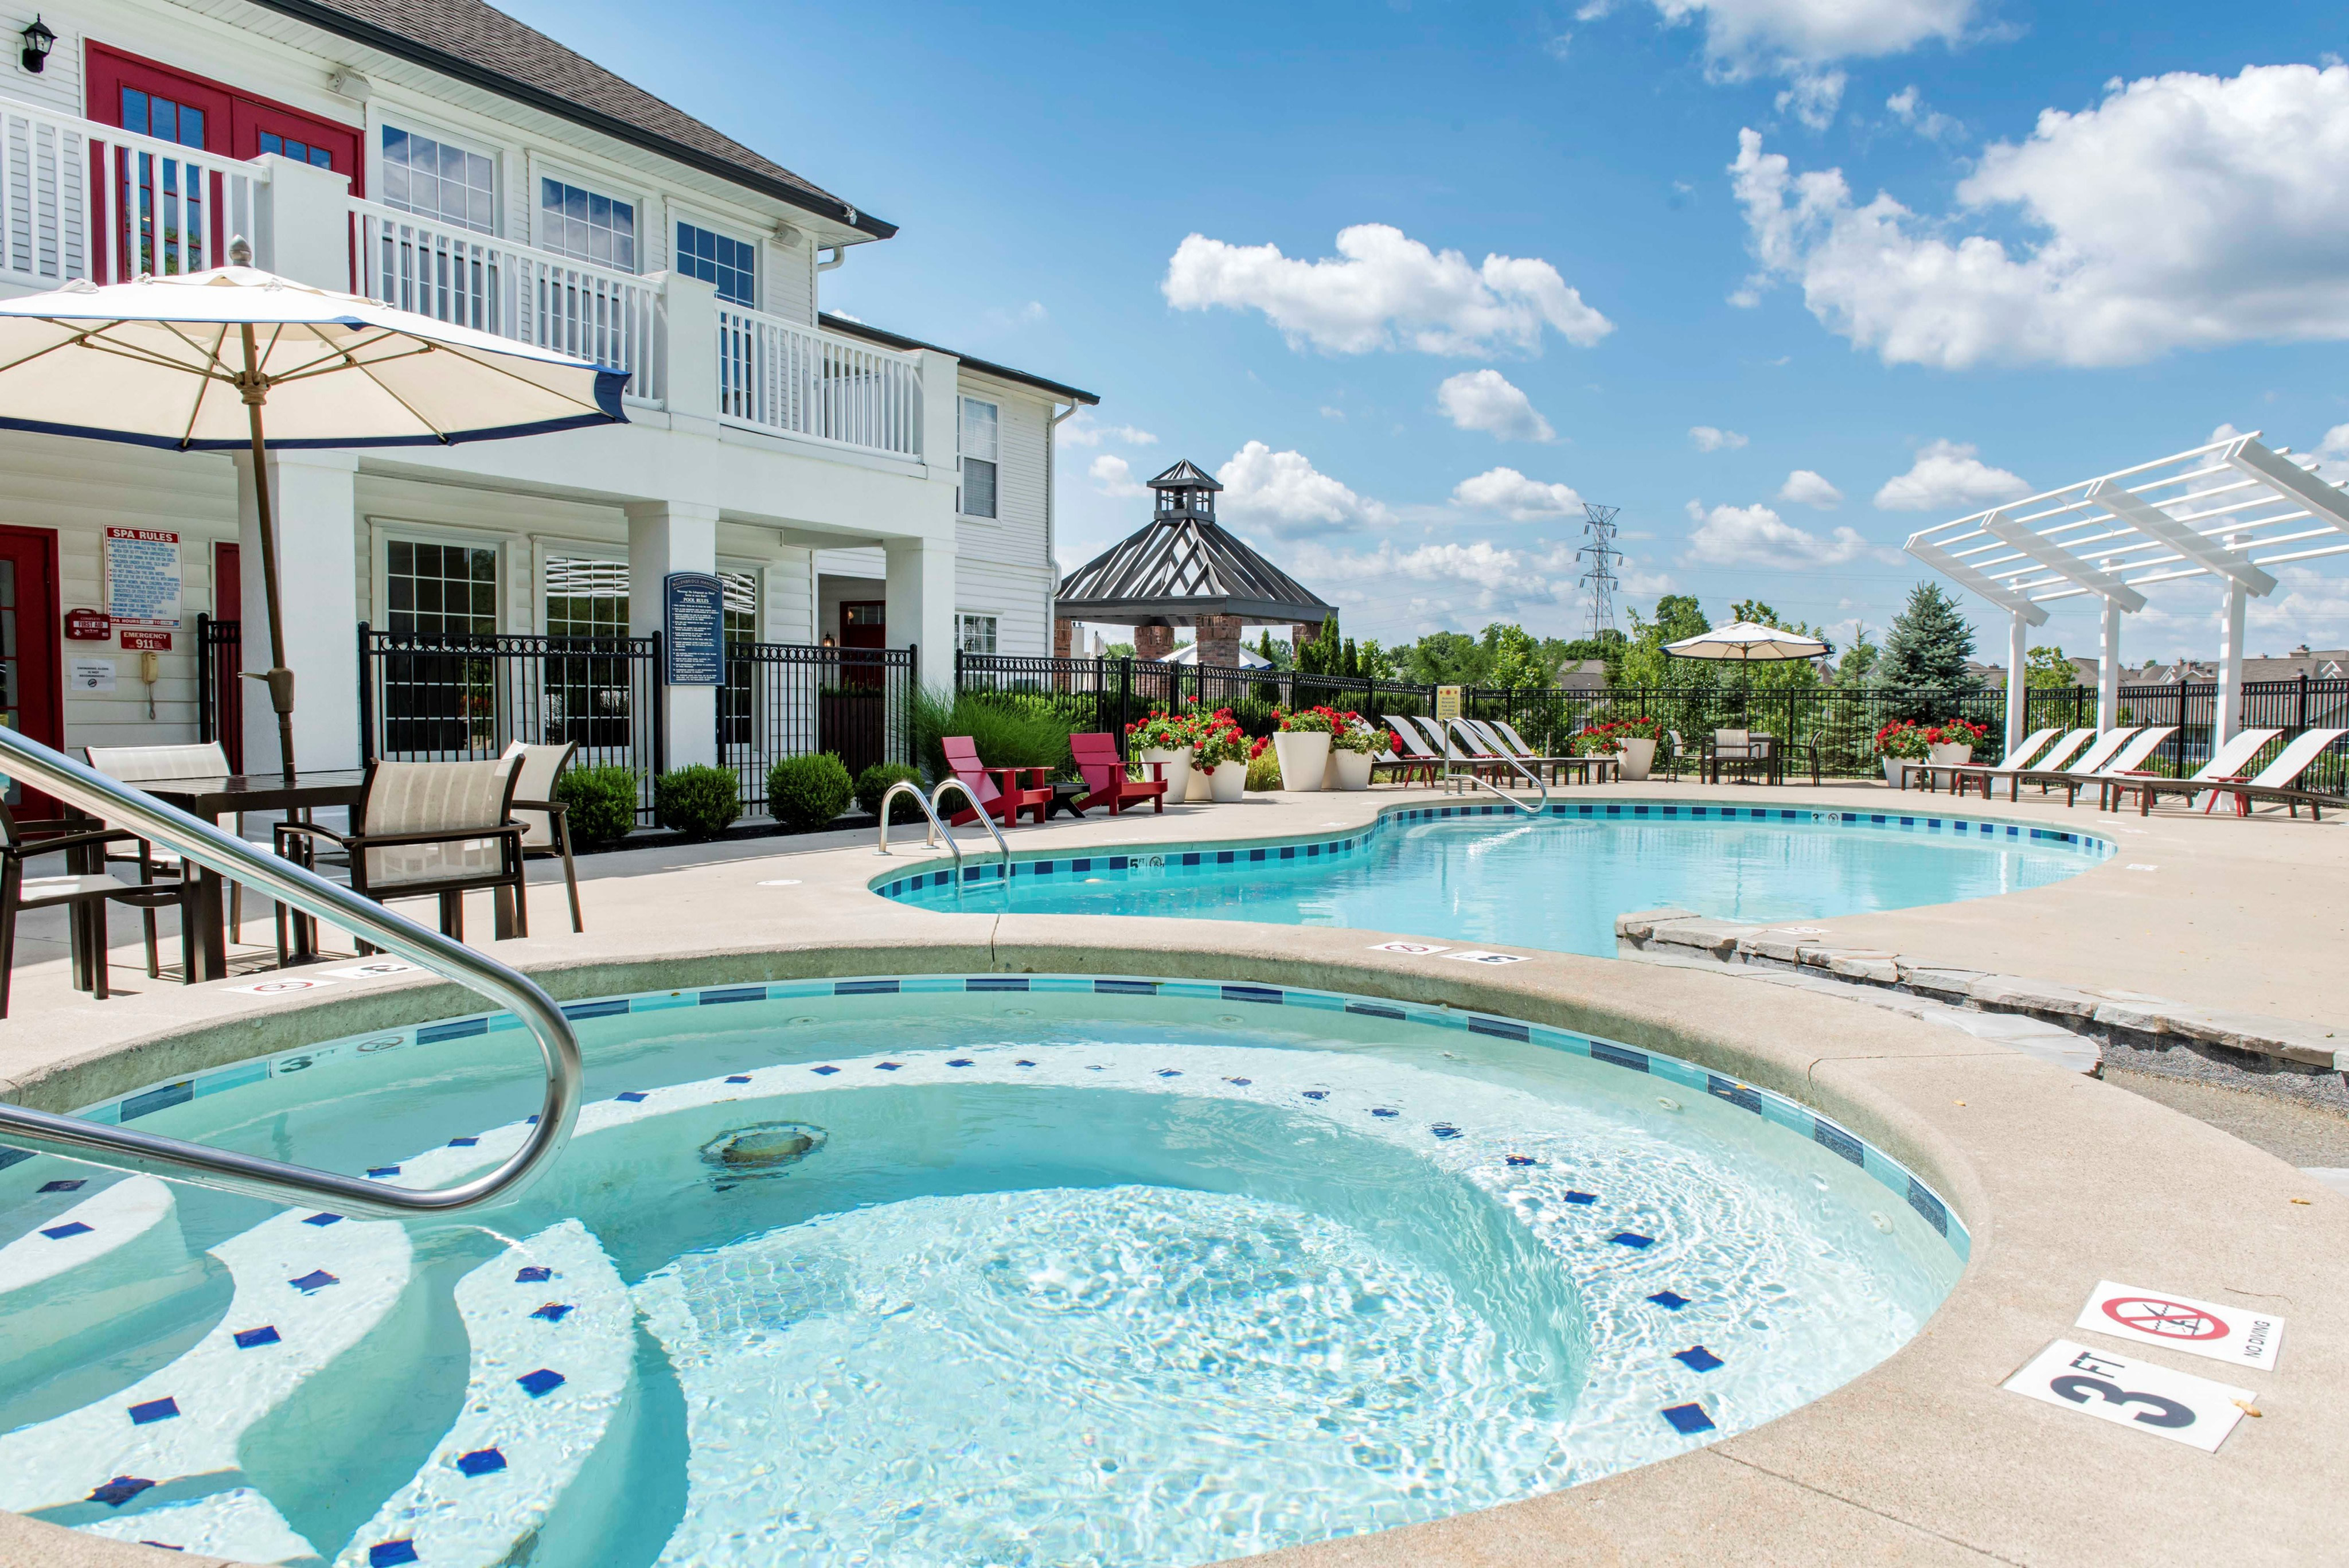 20 best apartments in loveland oh with pictures